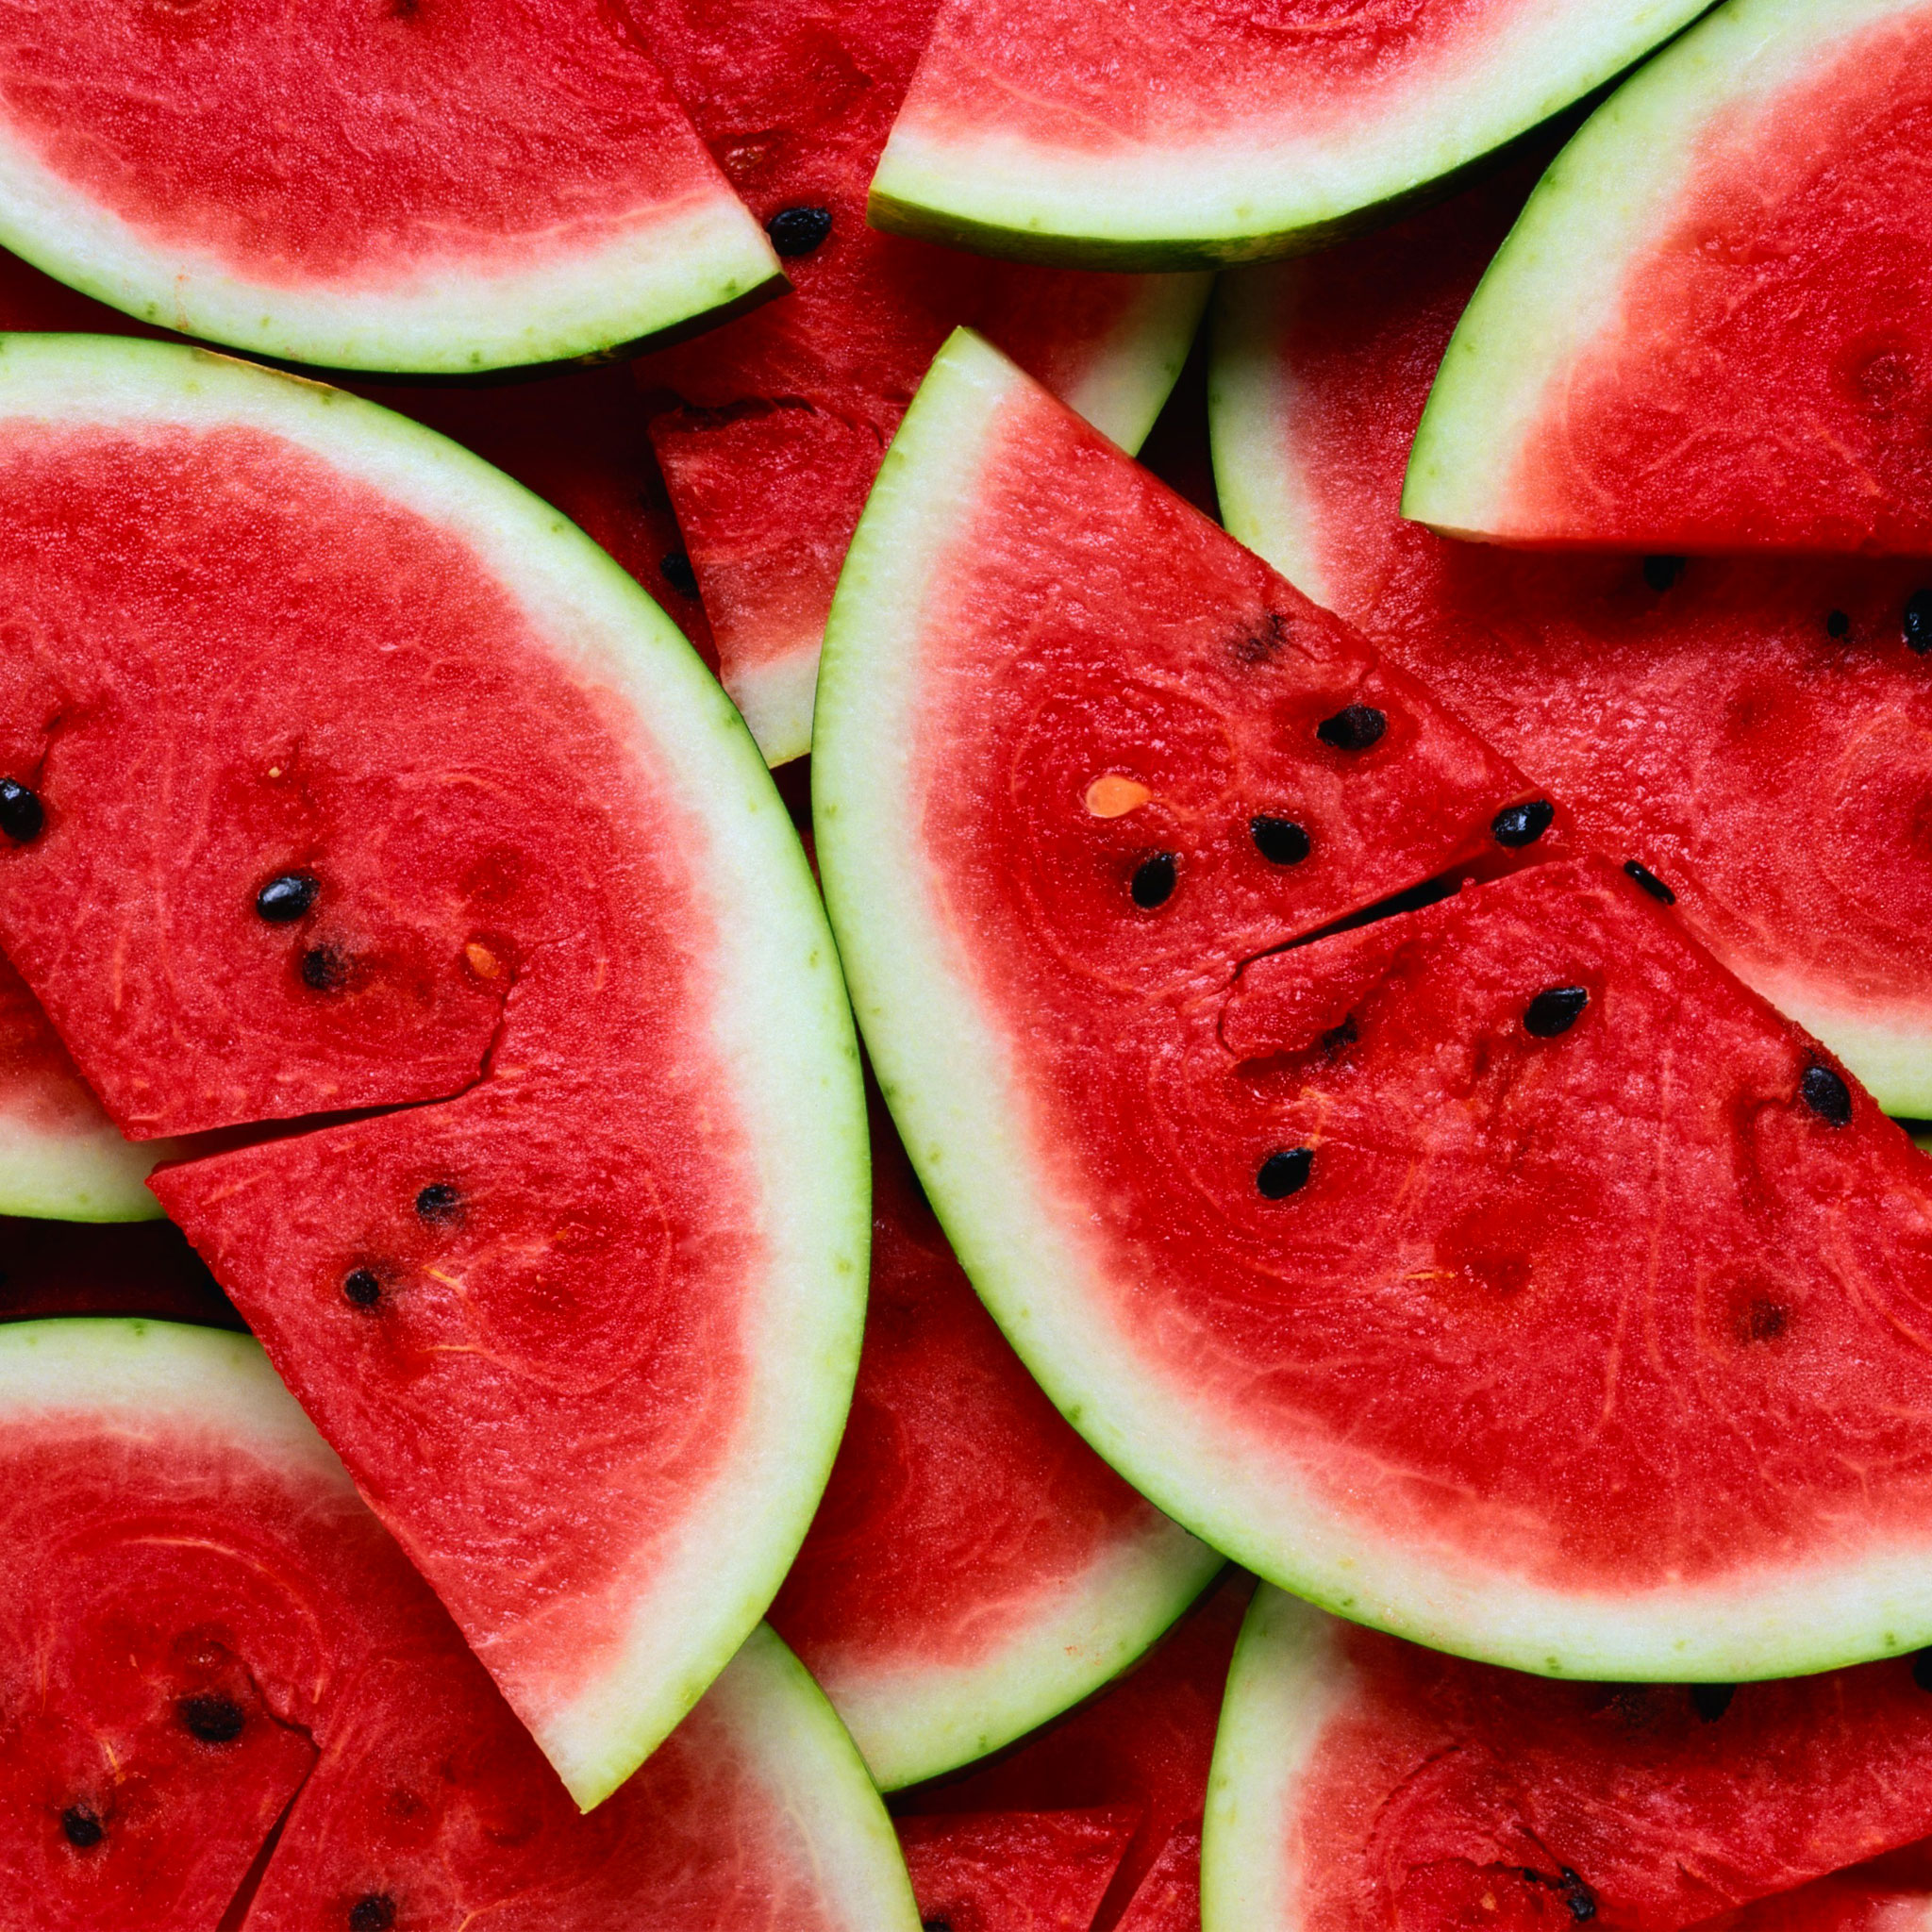 Tumblr Watermelon Iphone Wallpaper